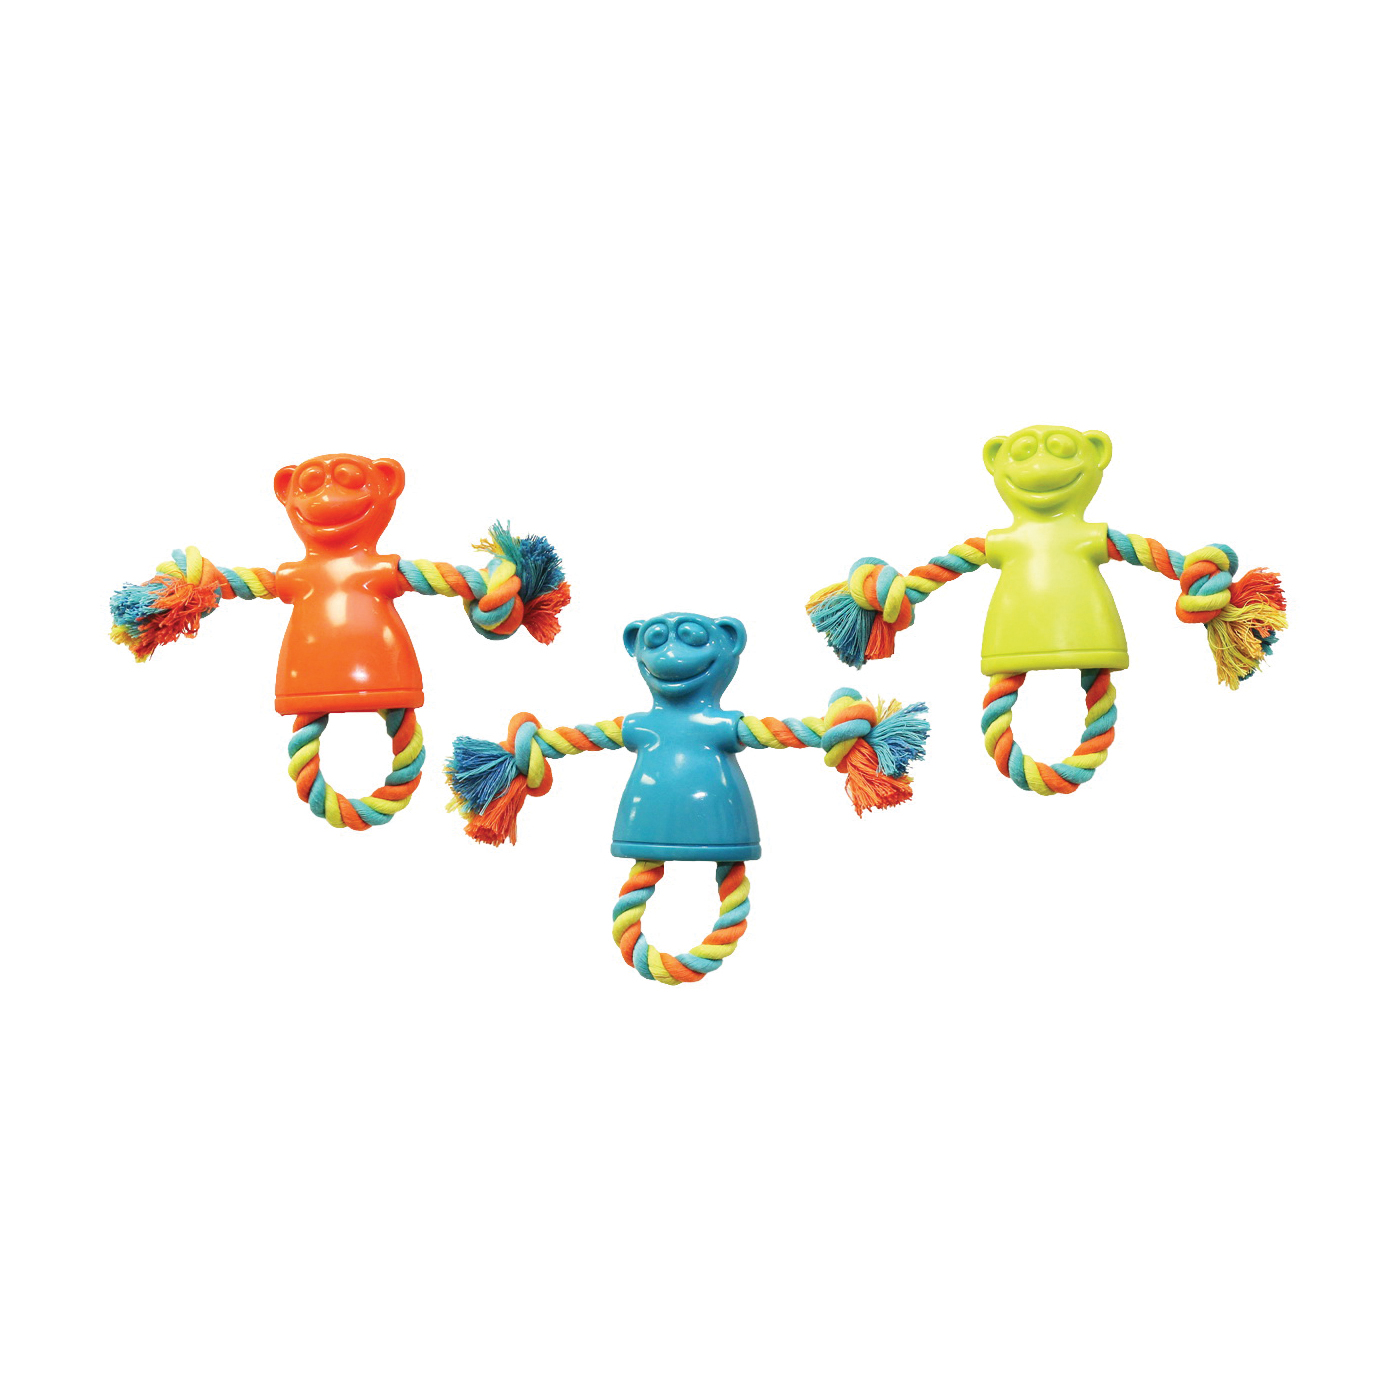 Picture of Chomper WB15501 Dog Toy, S, Monkey, Thermoplastic Rubber